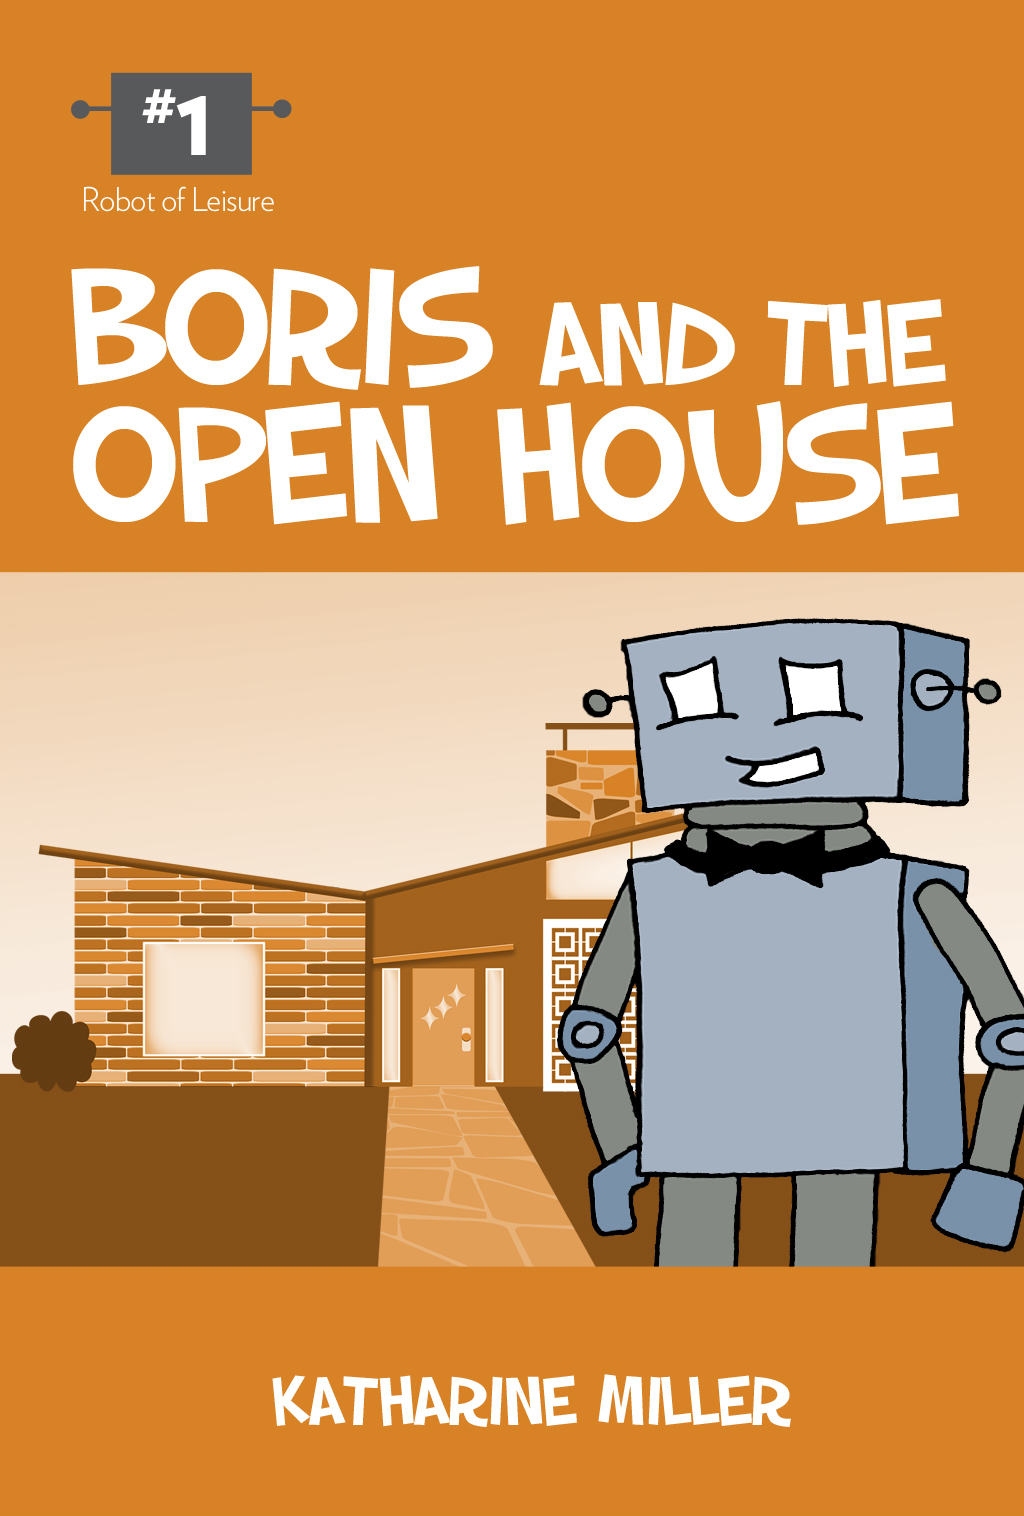 Boris and the Open House